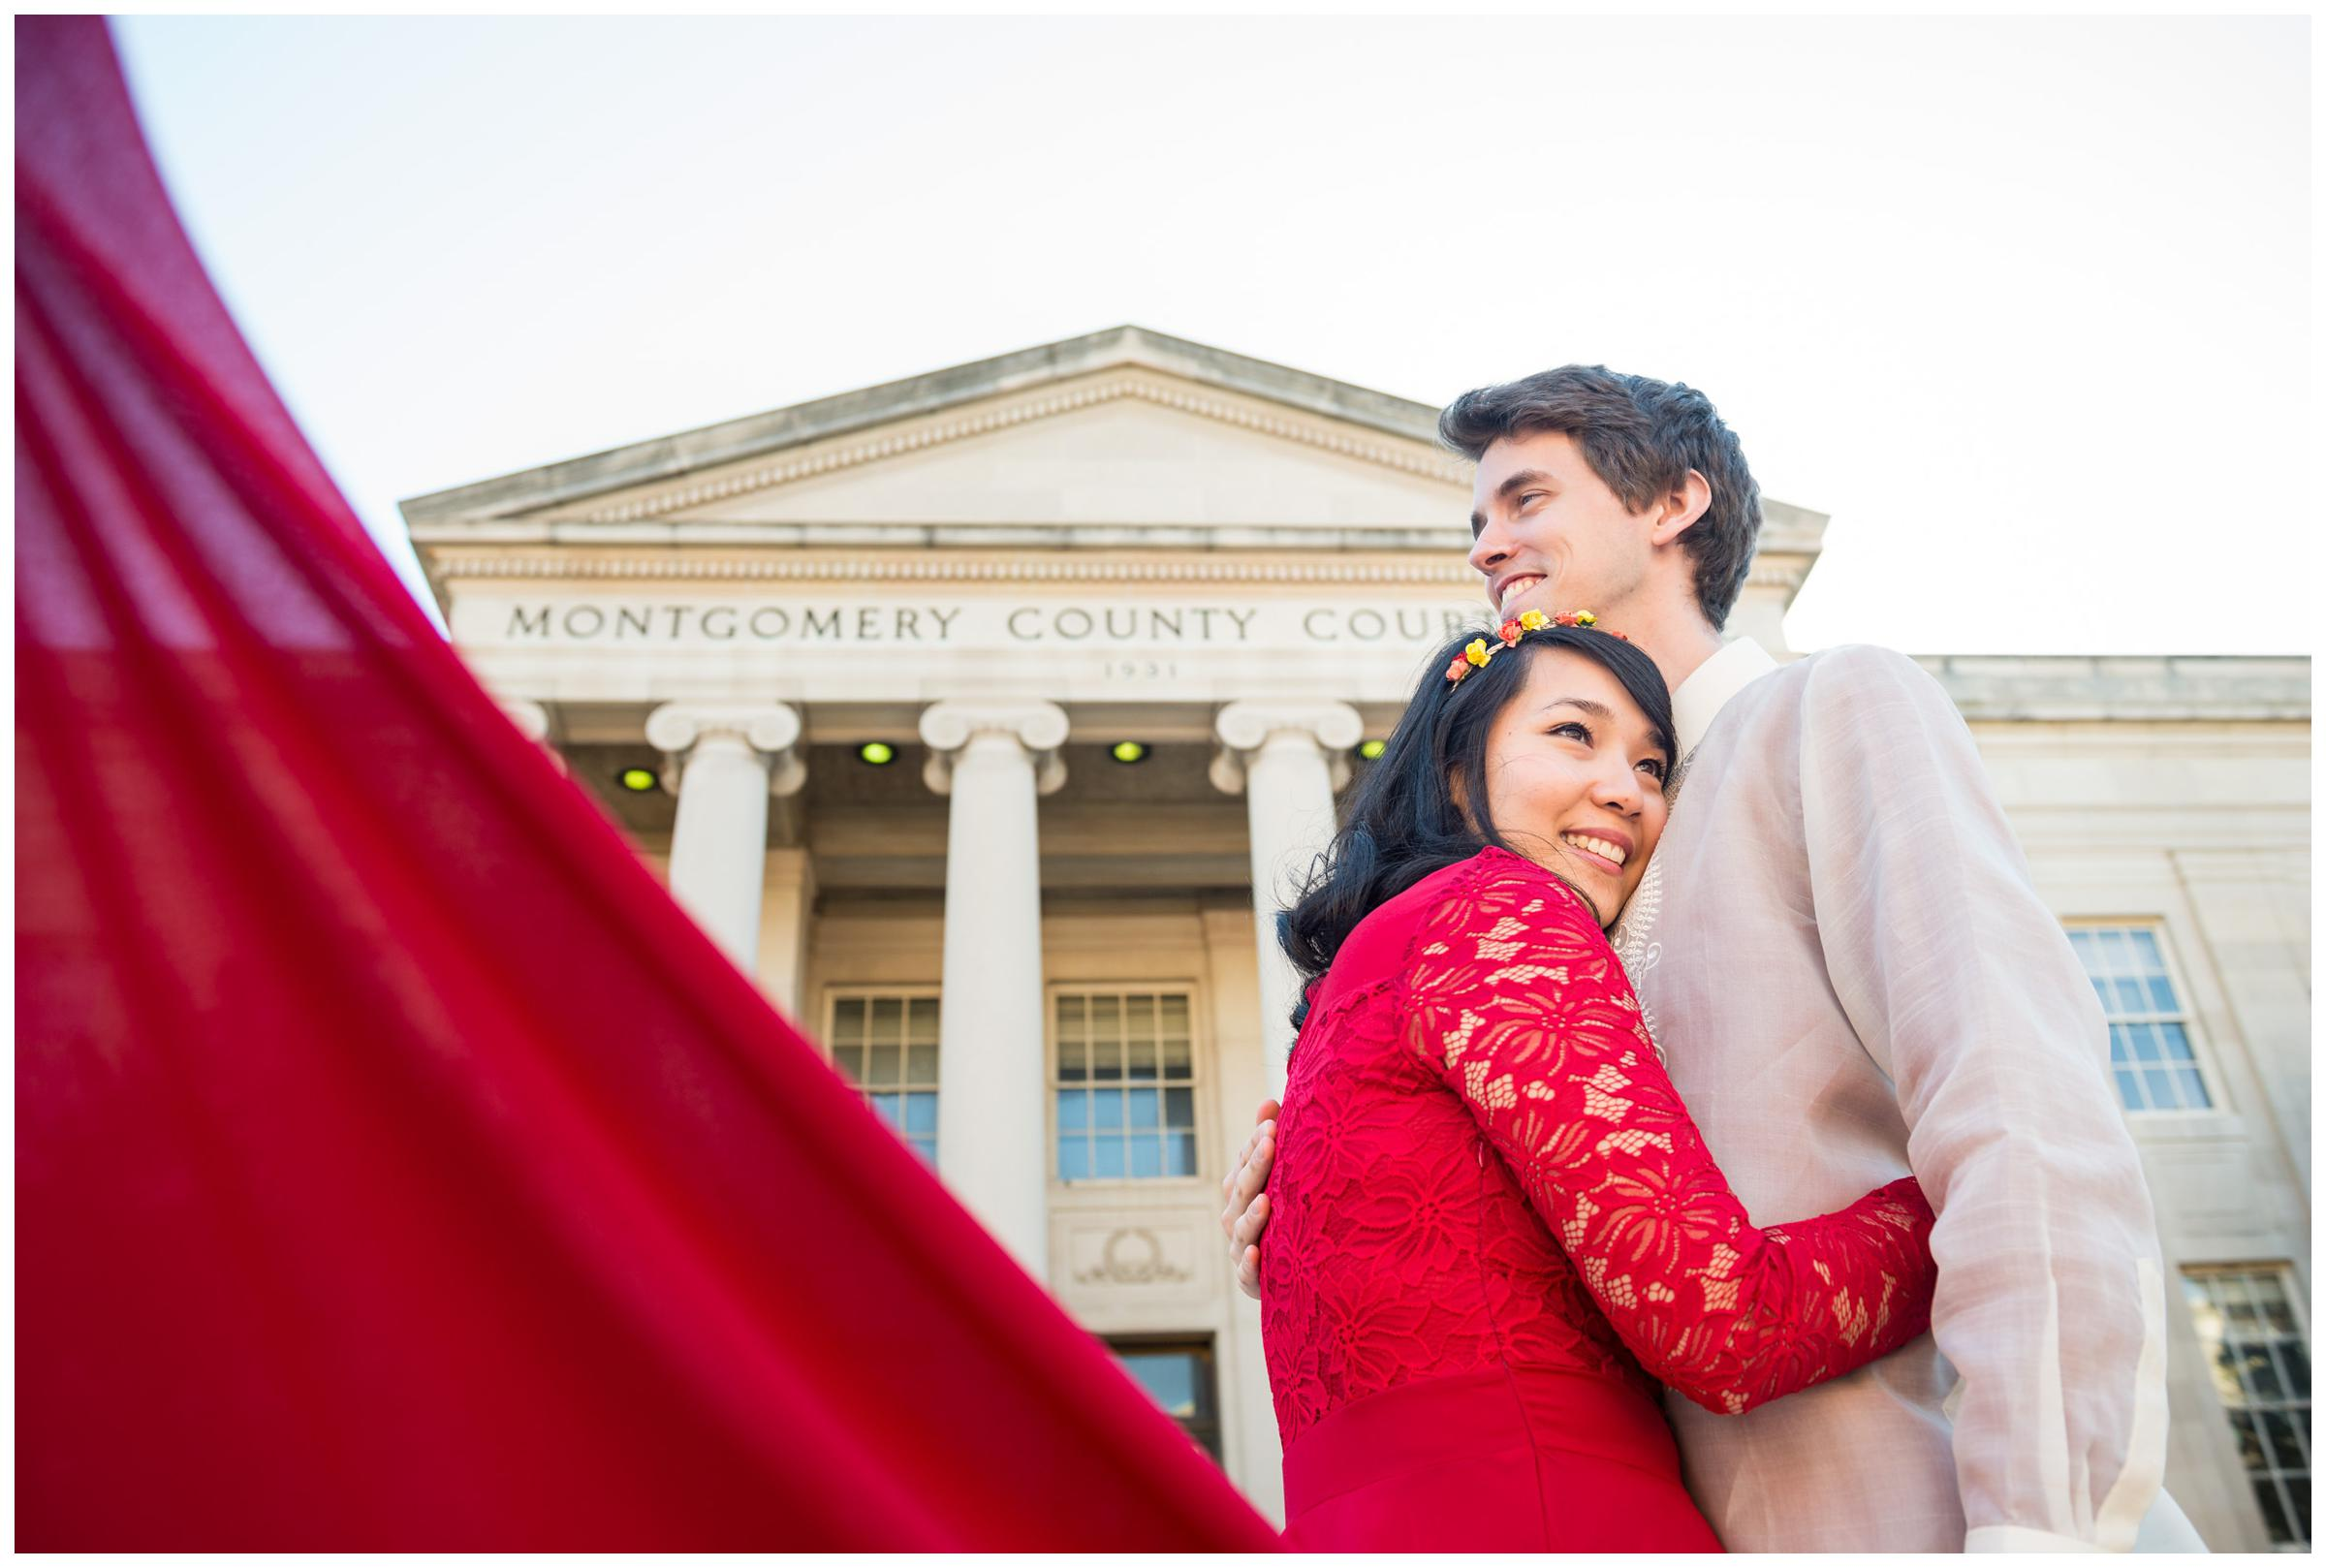 groom with bride in red wedding dress outside of courthouse in Rockville, Maryland